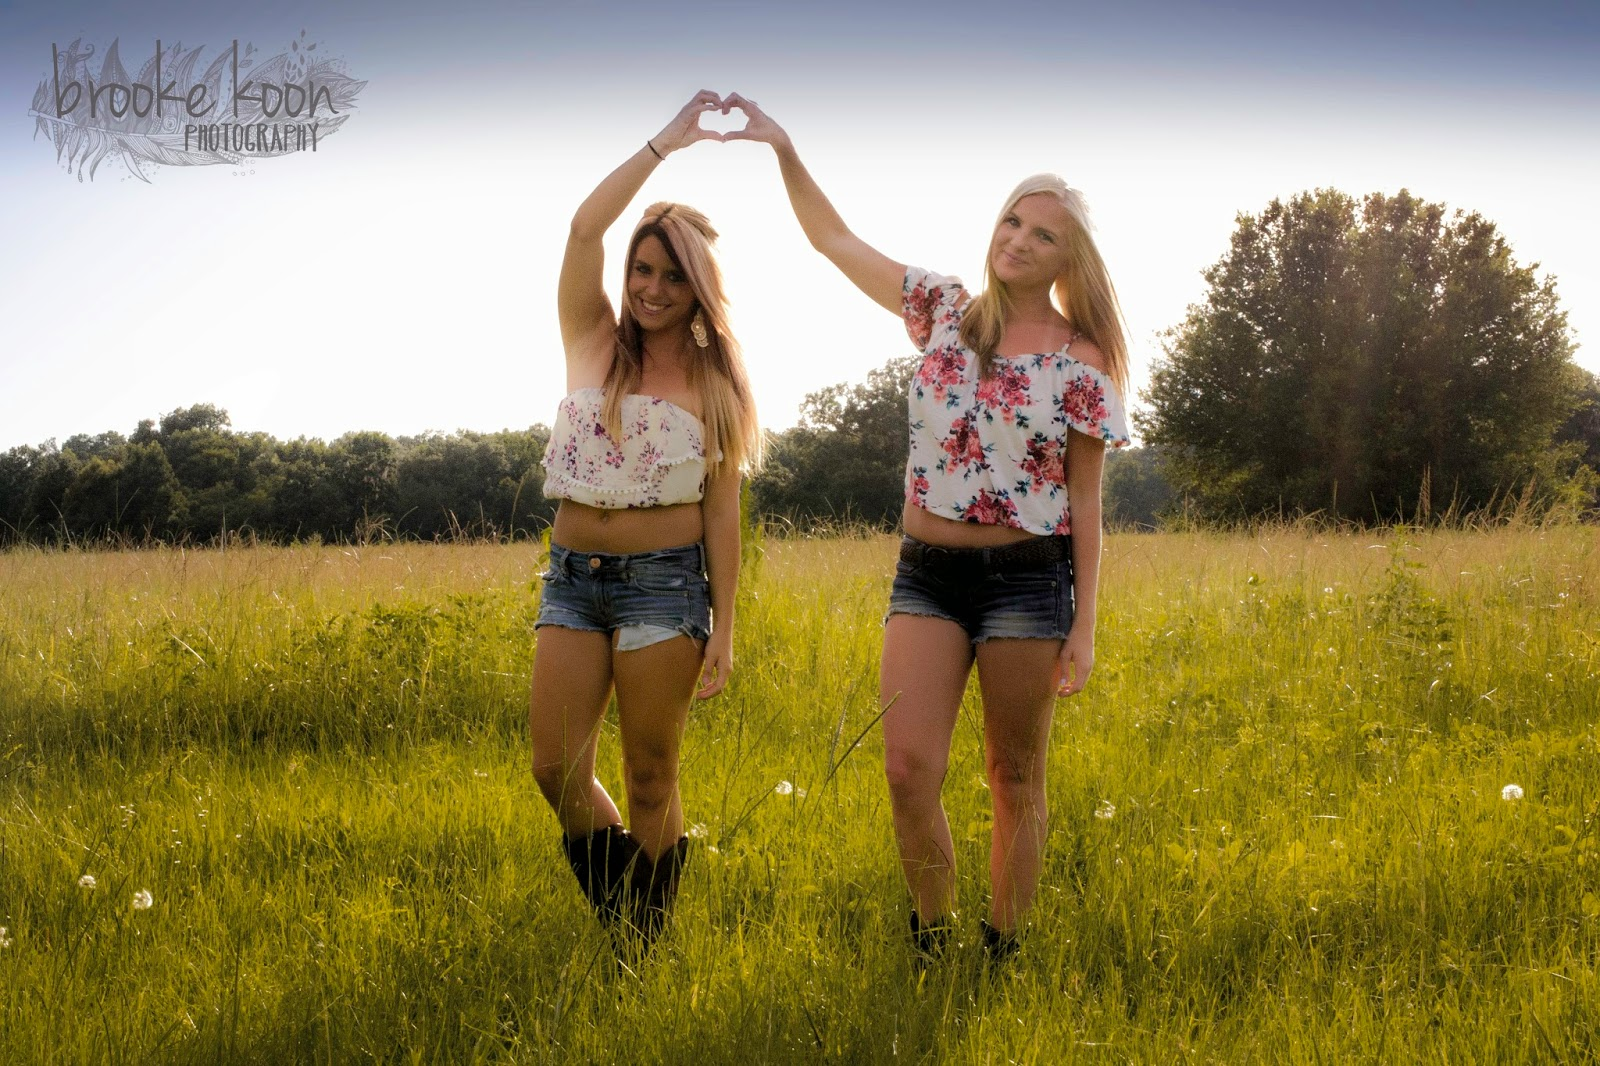 Brooke Koon Photography Best Friend Session Your friends photoshoot stock images are ready. brooke koon photography blogger